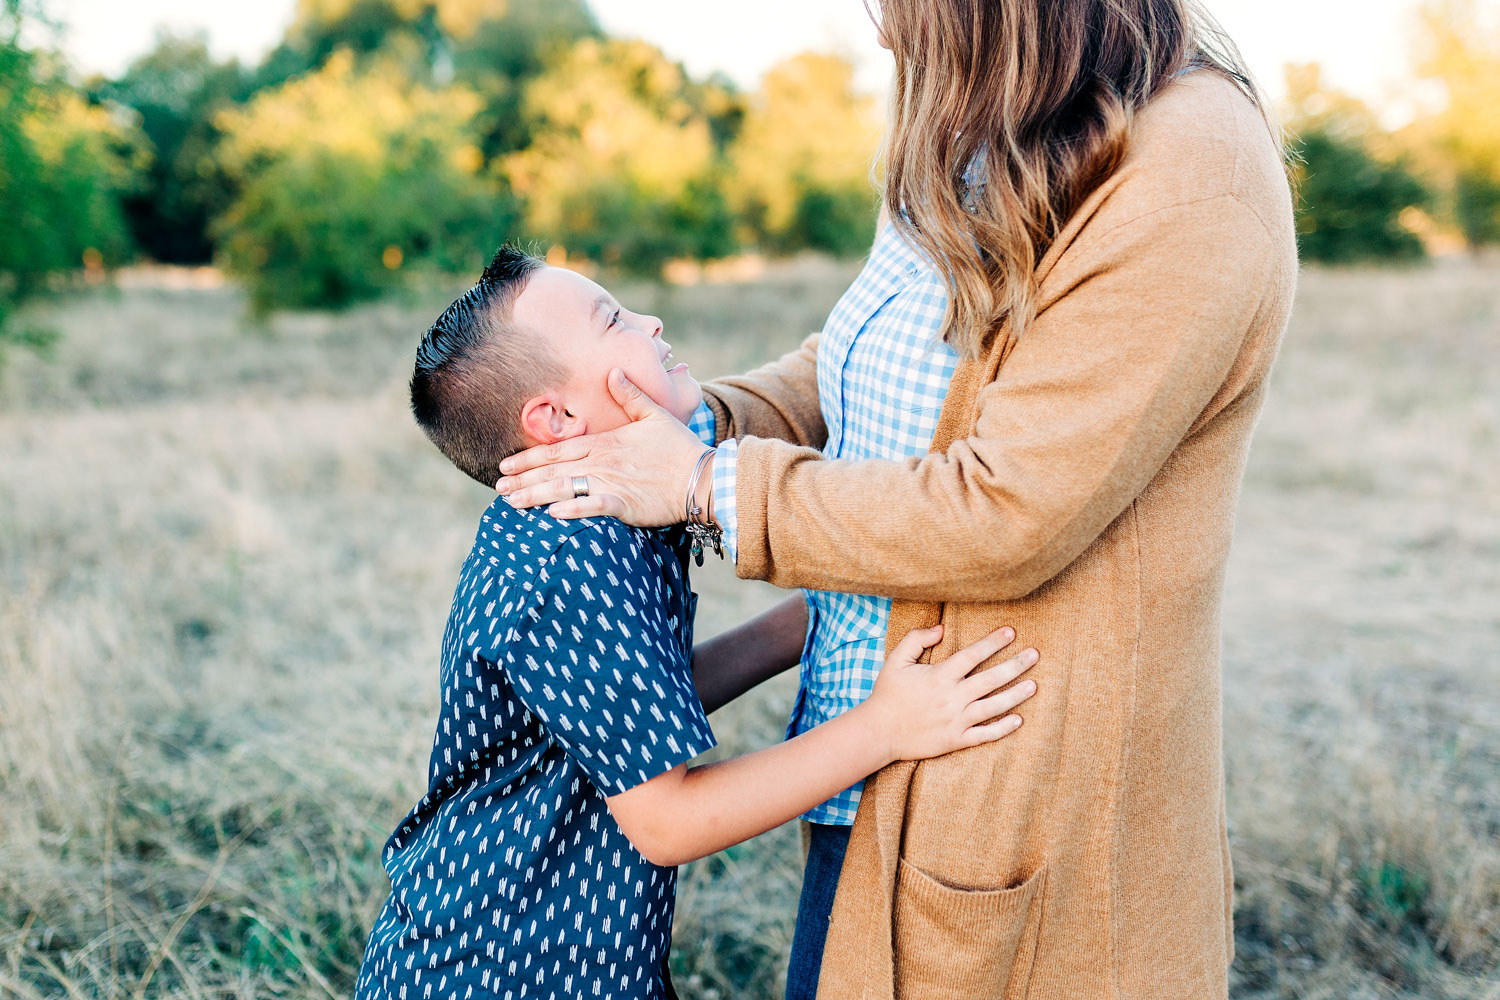 A mother and her son show love with each other during a family photo session with their photographer, Amy Wright, based out of Sacramento, California.